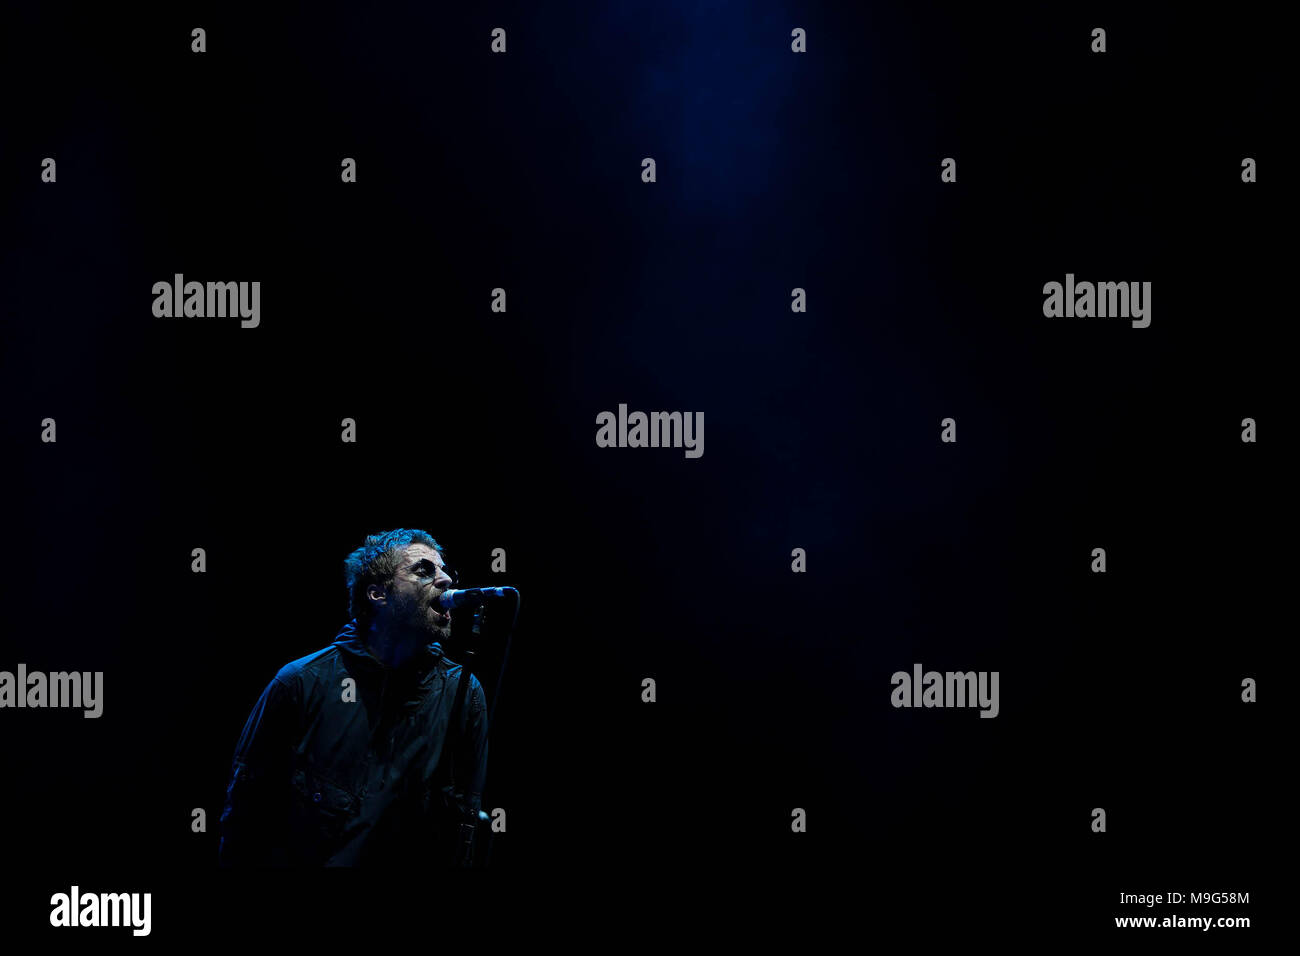 Sao Paulo, Brazil. 25th Mar, 2018. British singer Liam Gallagher performs during the Lollapalooza music festival in Sao Paulo, Brazil, 25 March 2018. Credit: Fernando Bizerra Jr./EFE/Alamy Live News - Stock Image